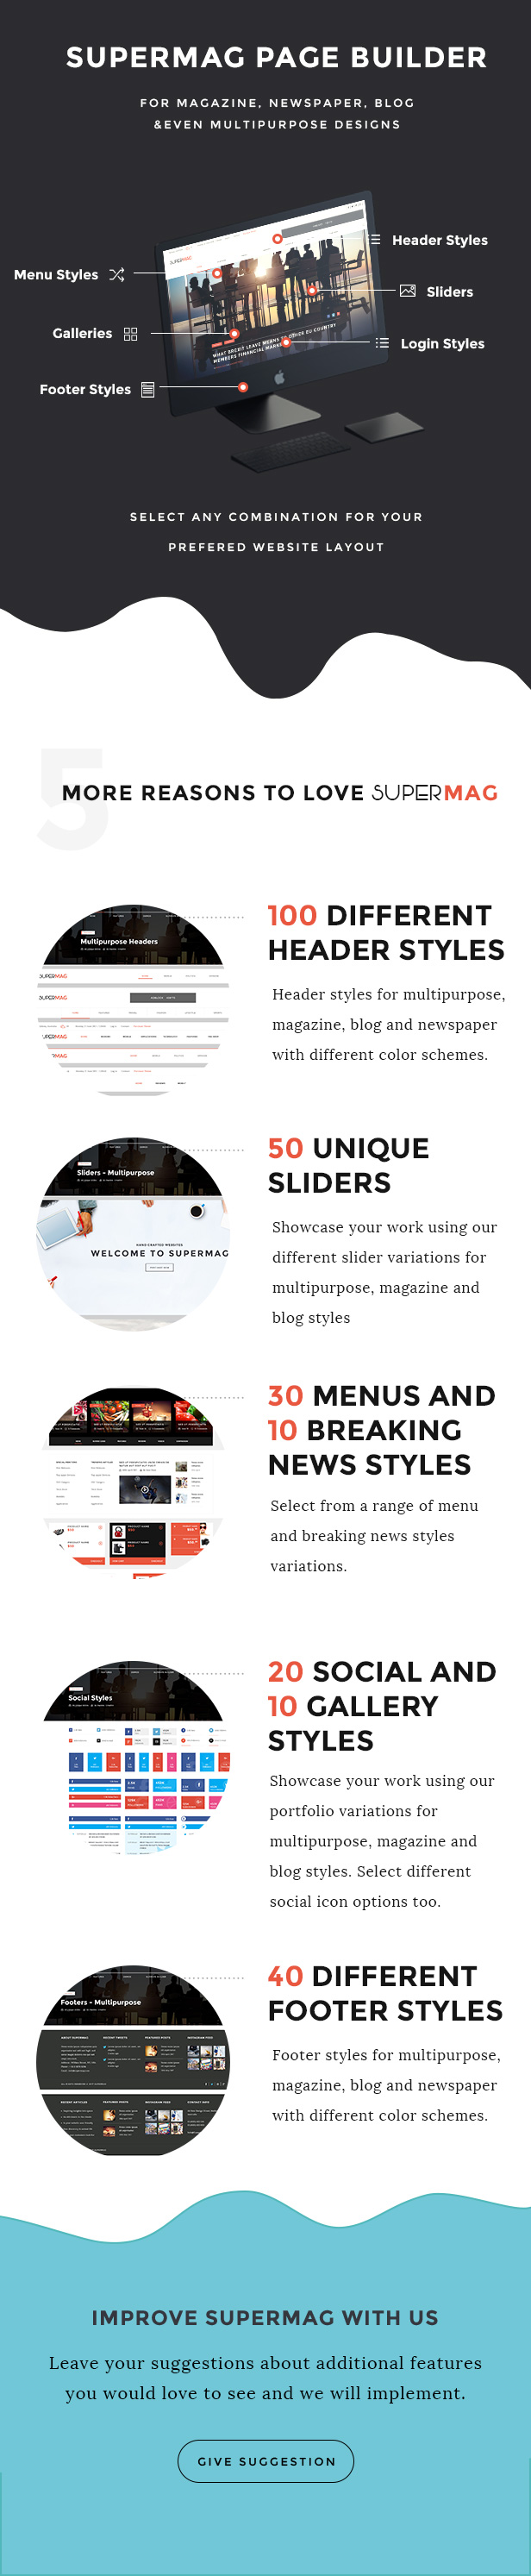 SuperMag - Magazine/Newspaper/Blog & Builder PSD Template - 4